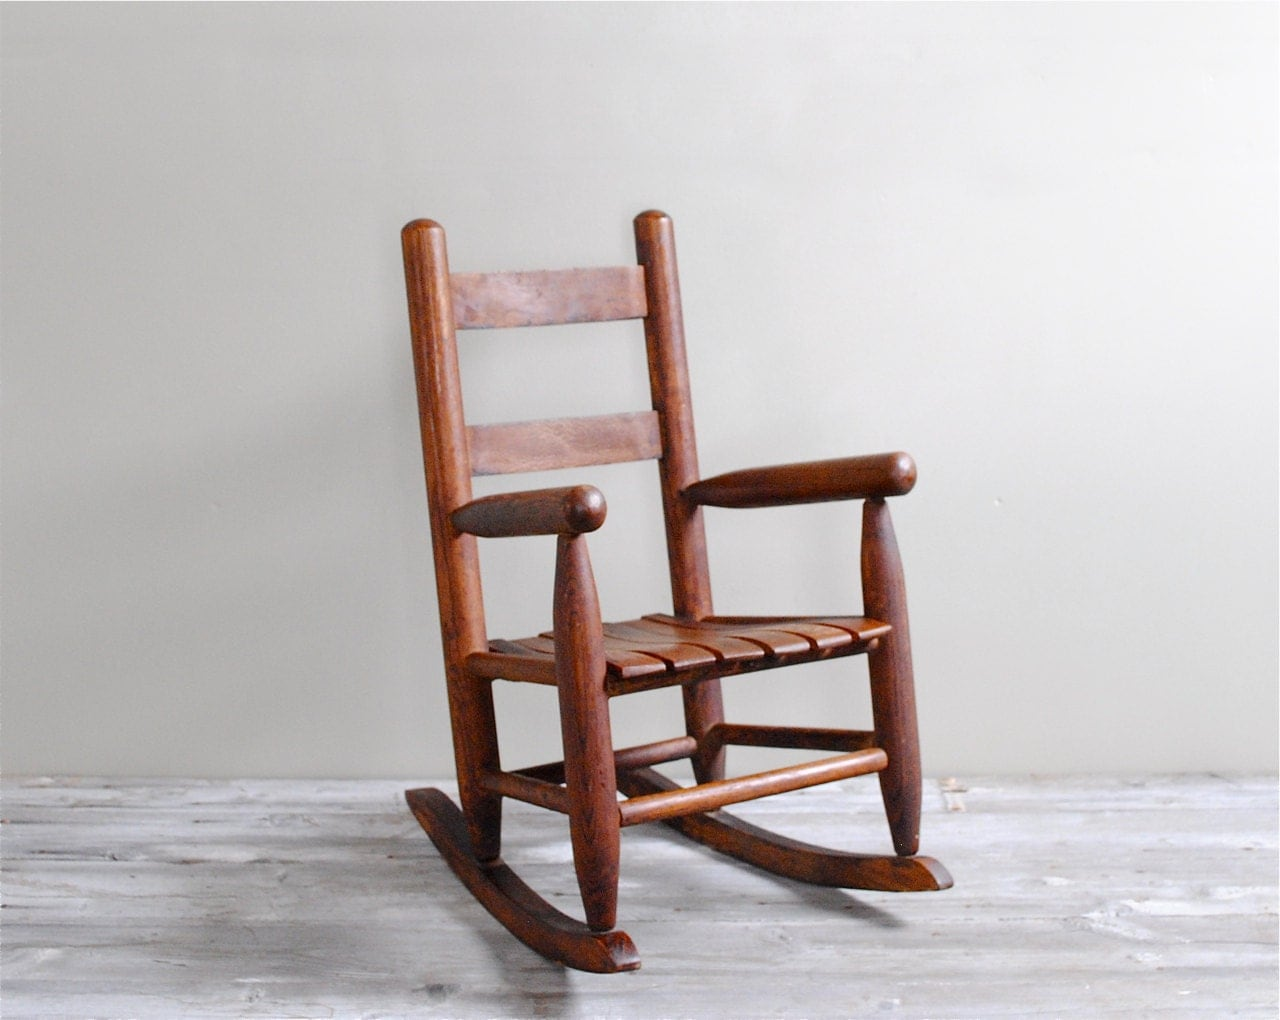 Vintage Childs Rocking Chair by LittleDogVintage on Etsy